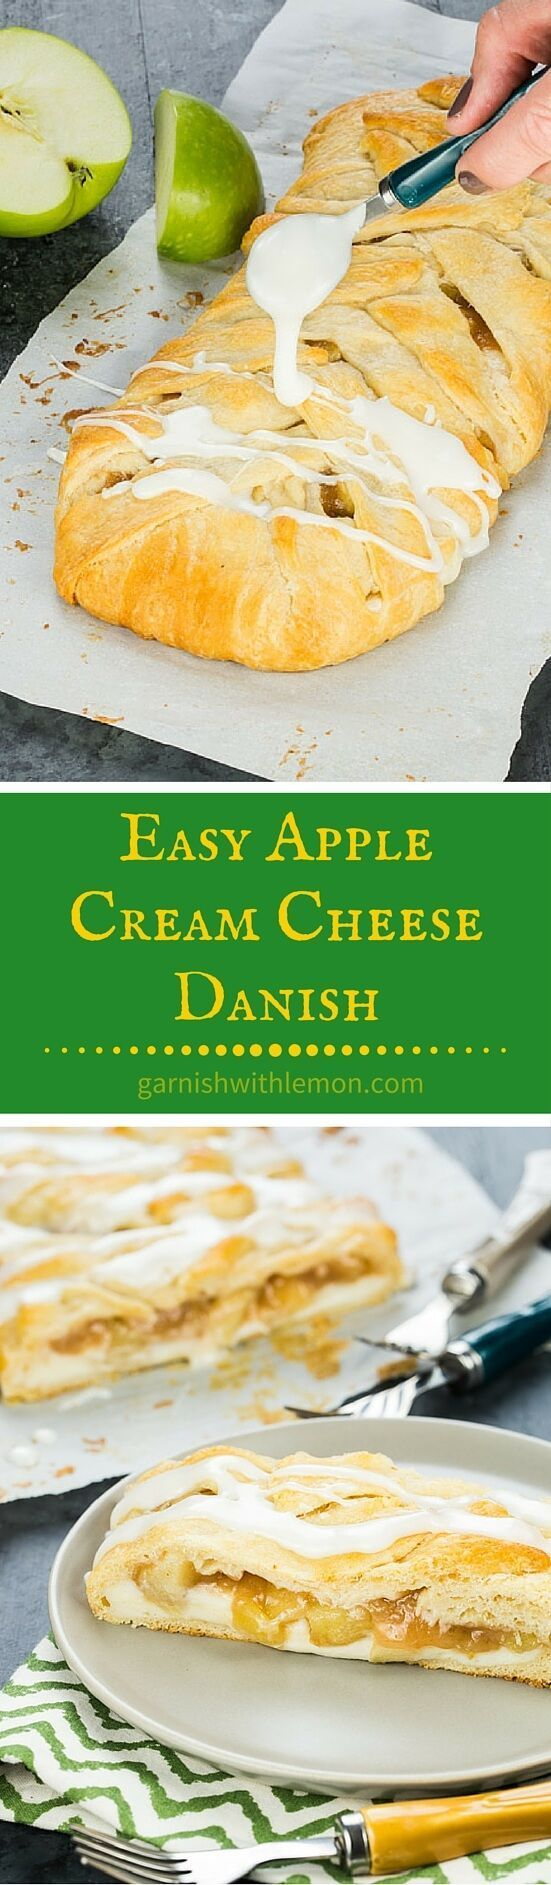 This Easy Apple Cream Cheese Danish is a tasty addition to any brunch! Filling can be prepped ahead of time and the dough is crescent rolls so it's simple to prepare. ~ http://www.garnishwithlemon.com